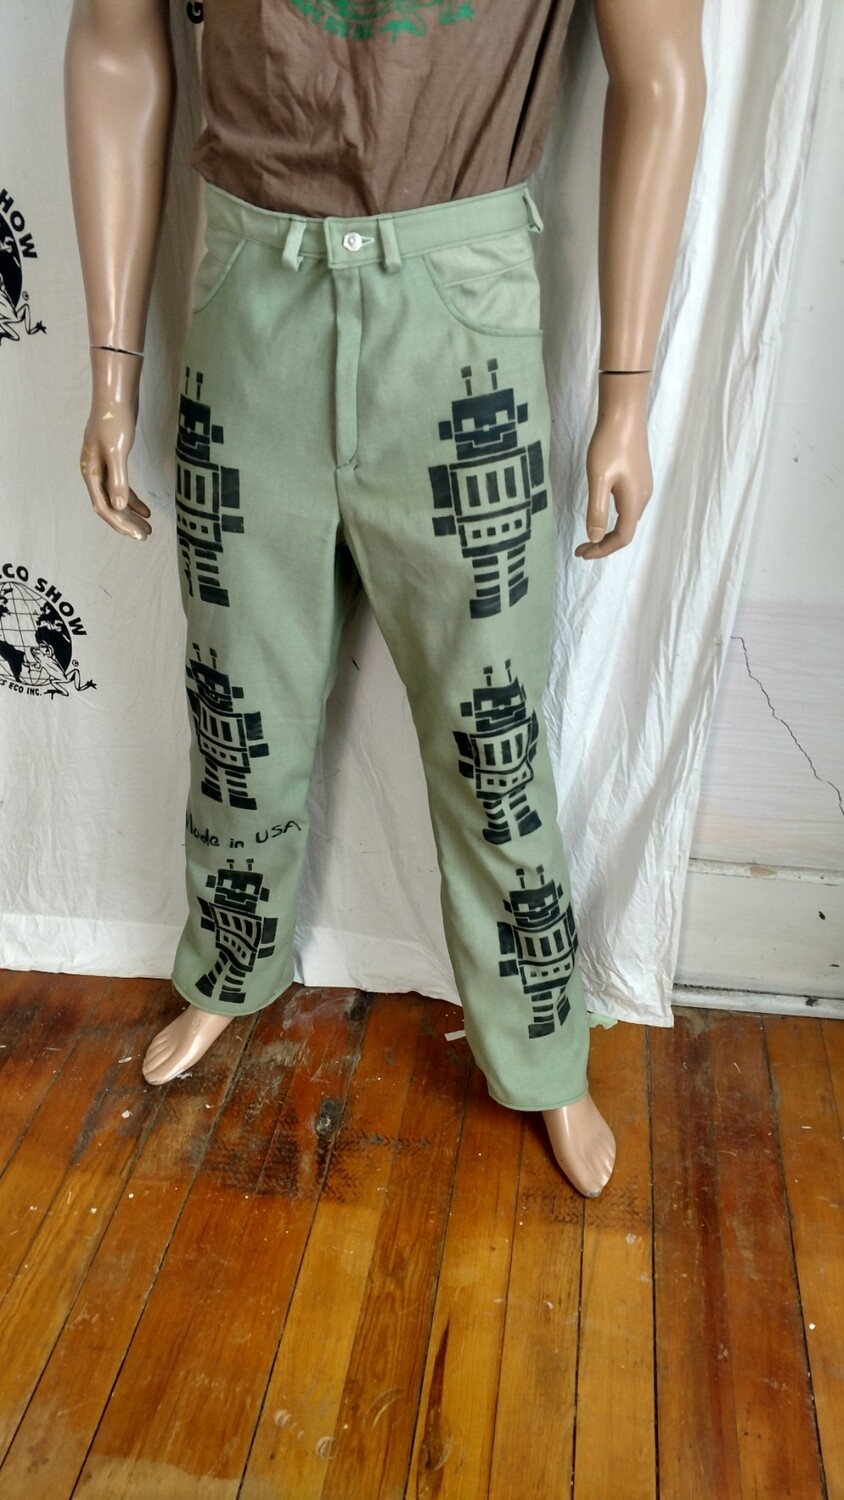 Mens Green Robot jeans 32 X 31 airbrushed